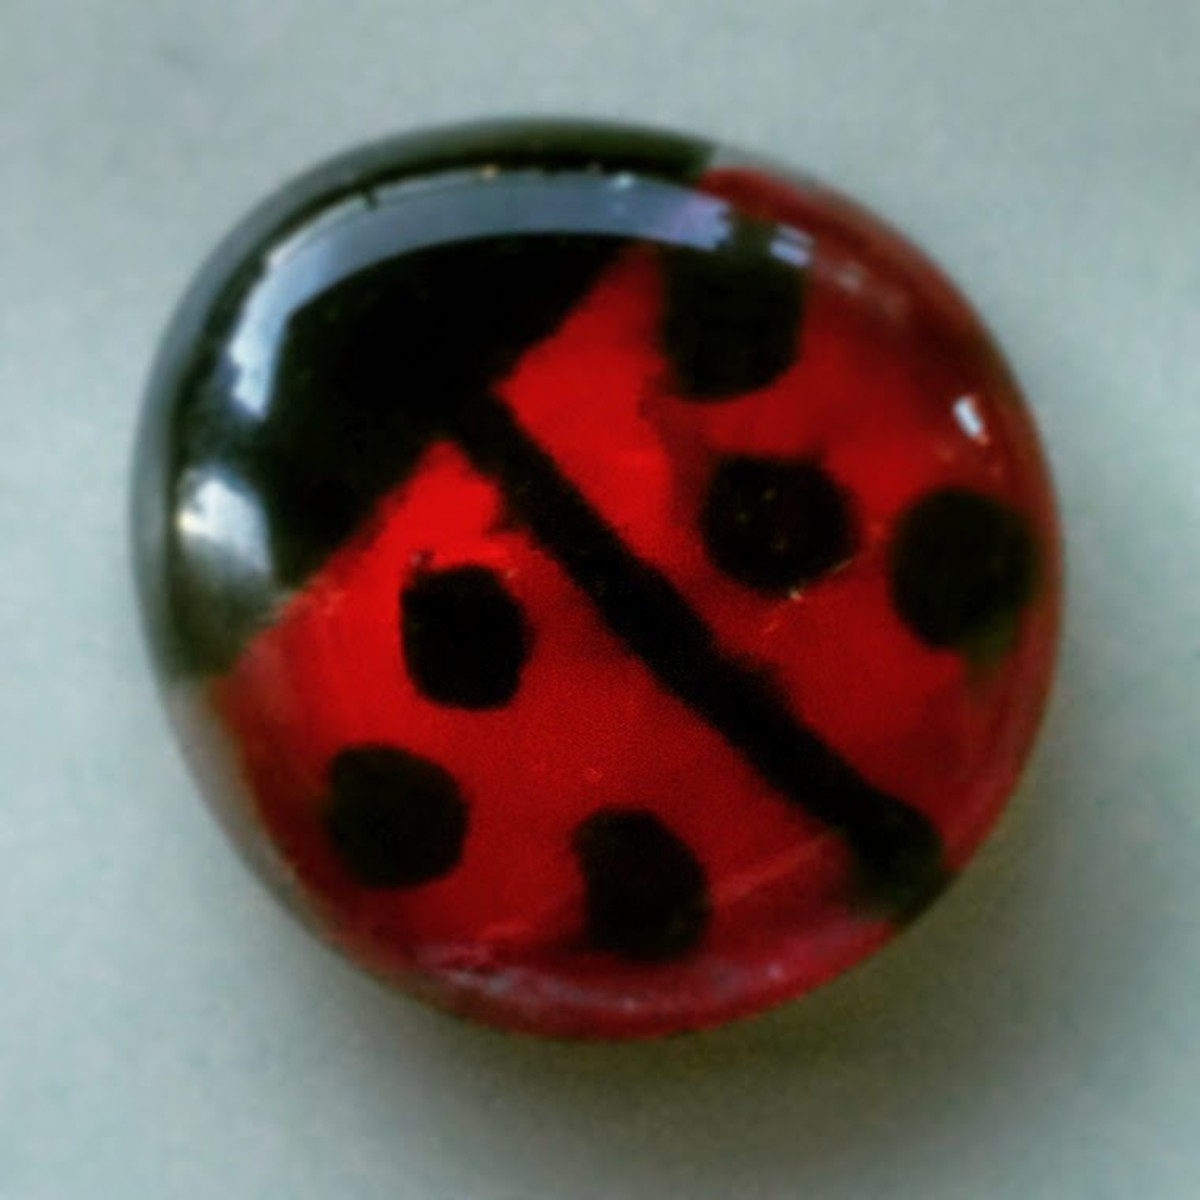 The black ink smeared a bit when I applied the red nail polish but I like the watery effect it gives the ladybug.